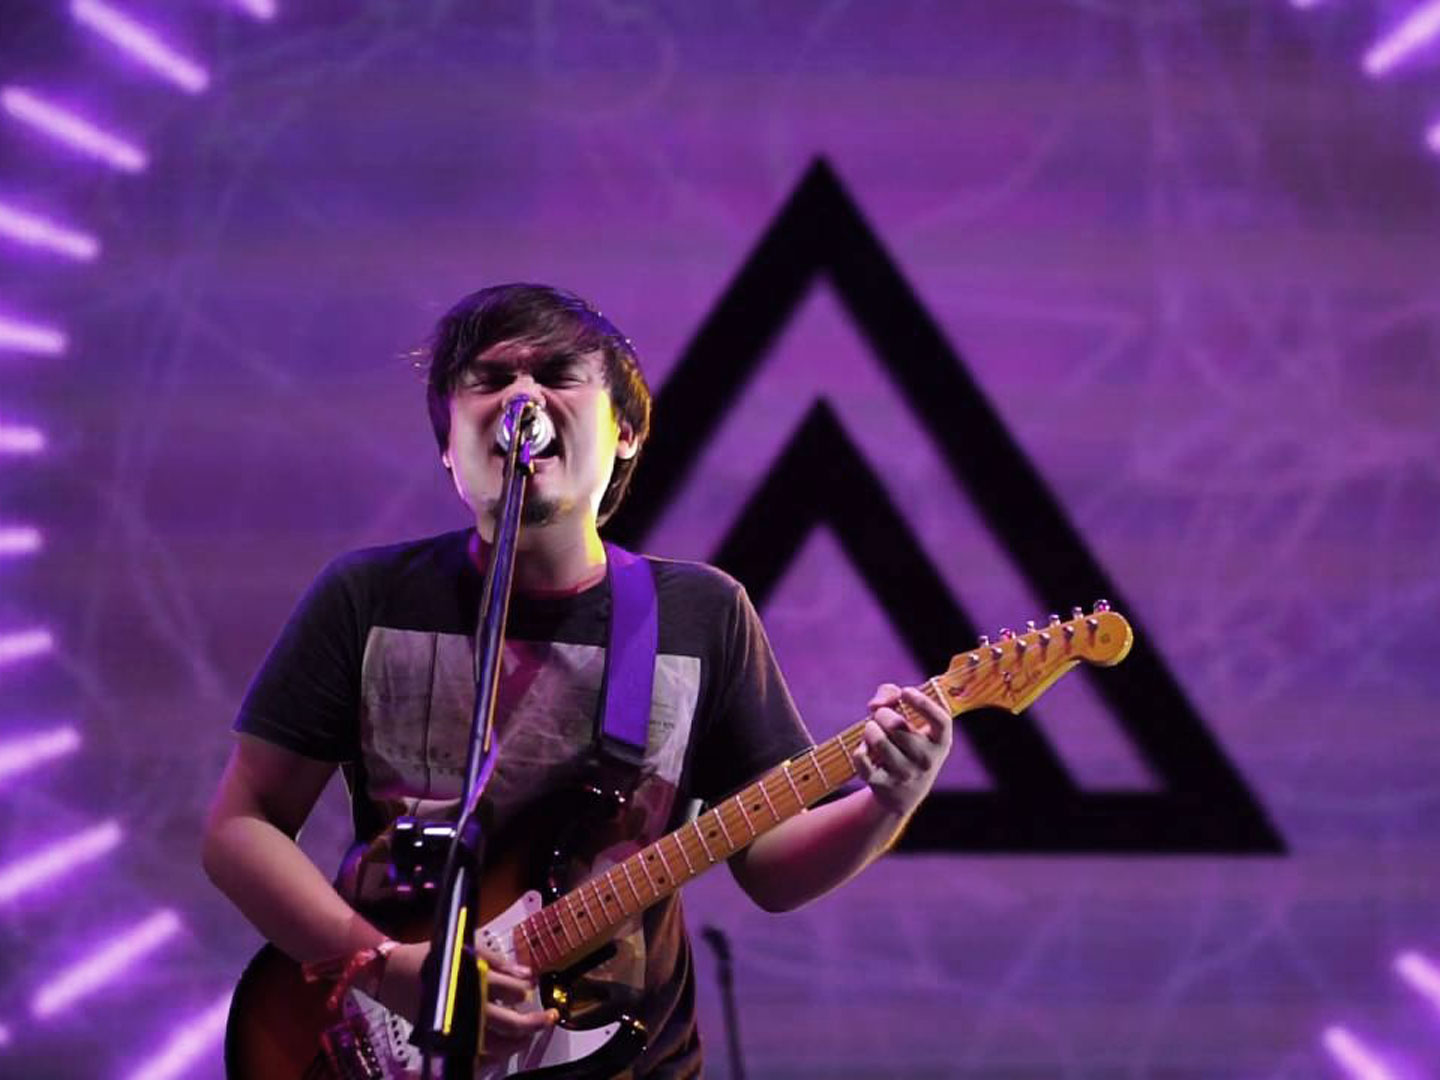 Autotelic Live at Jack Daniel's Future Legends IndieFest 2016)